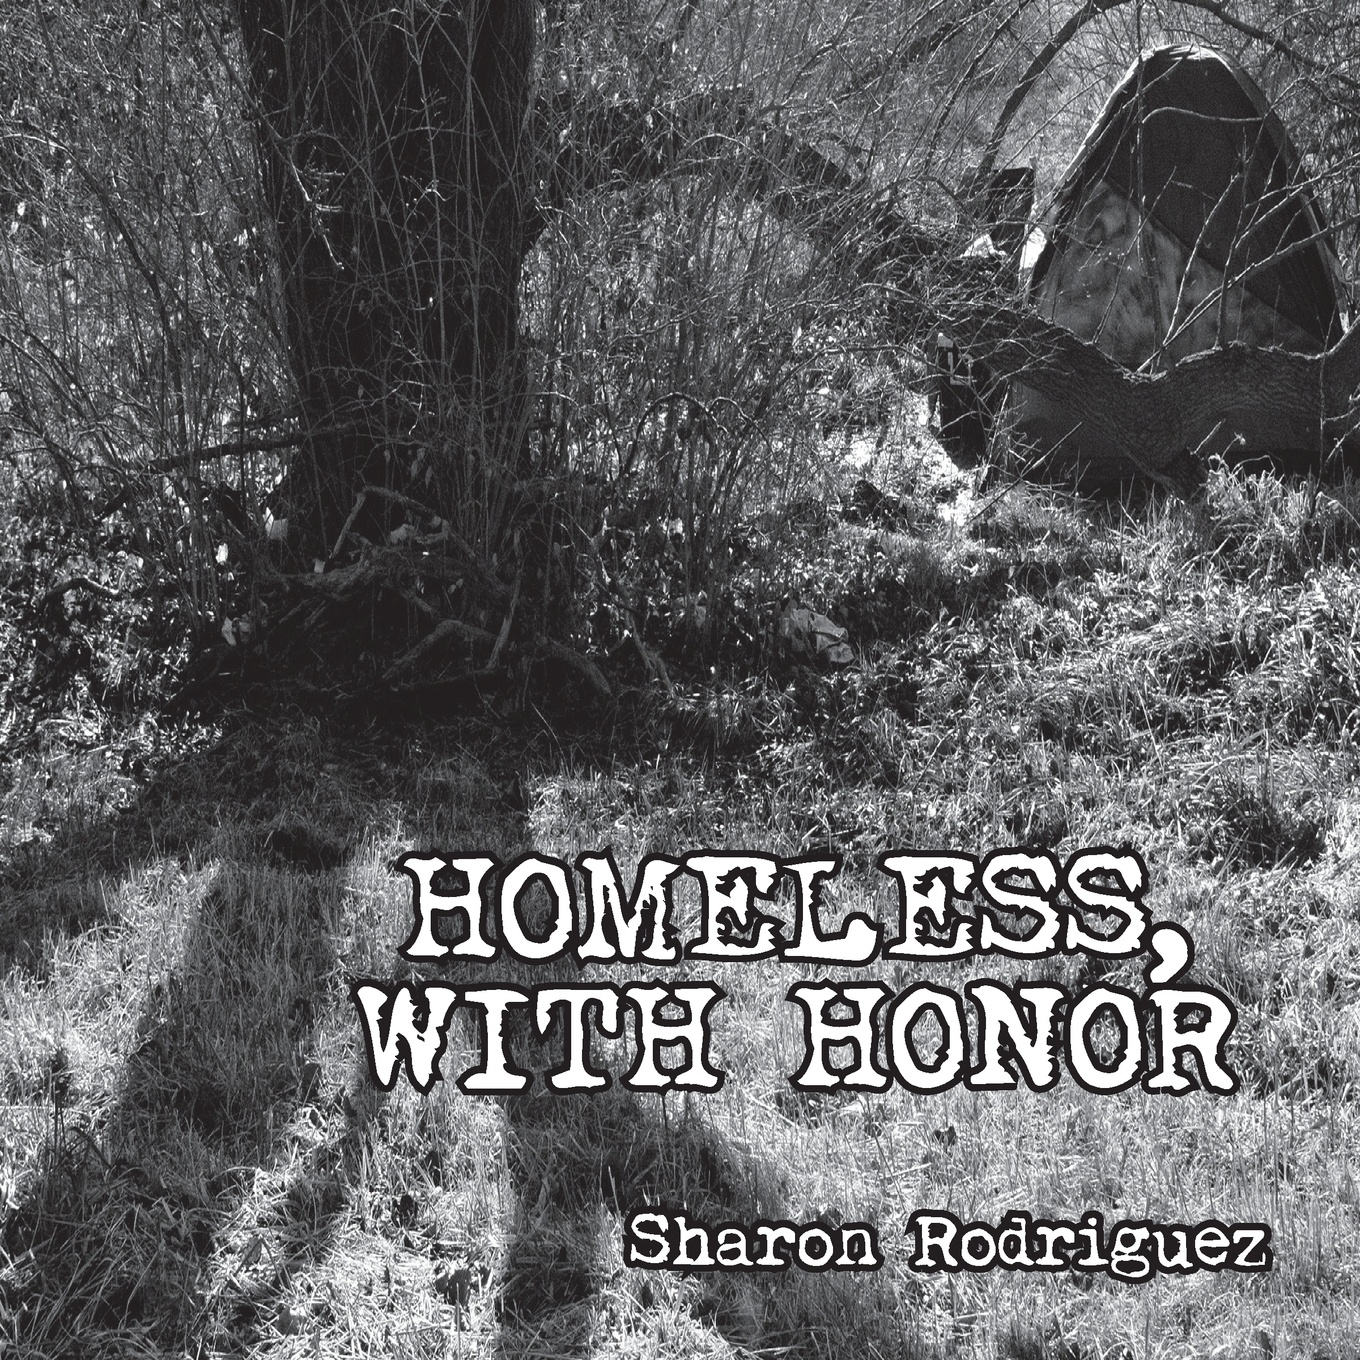 Sharon Rodriguez Homeless, with Honor sharon rodriguez homeless with honor